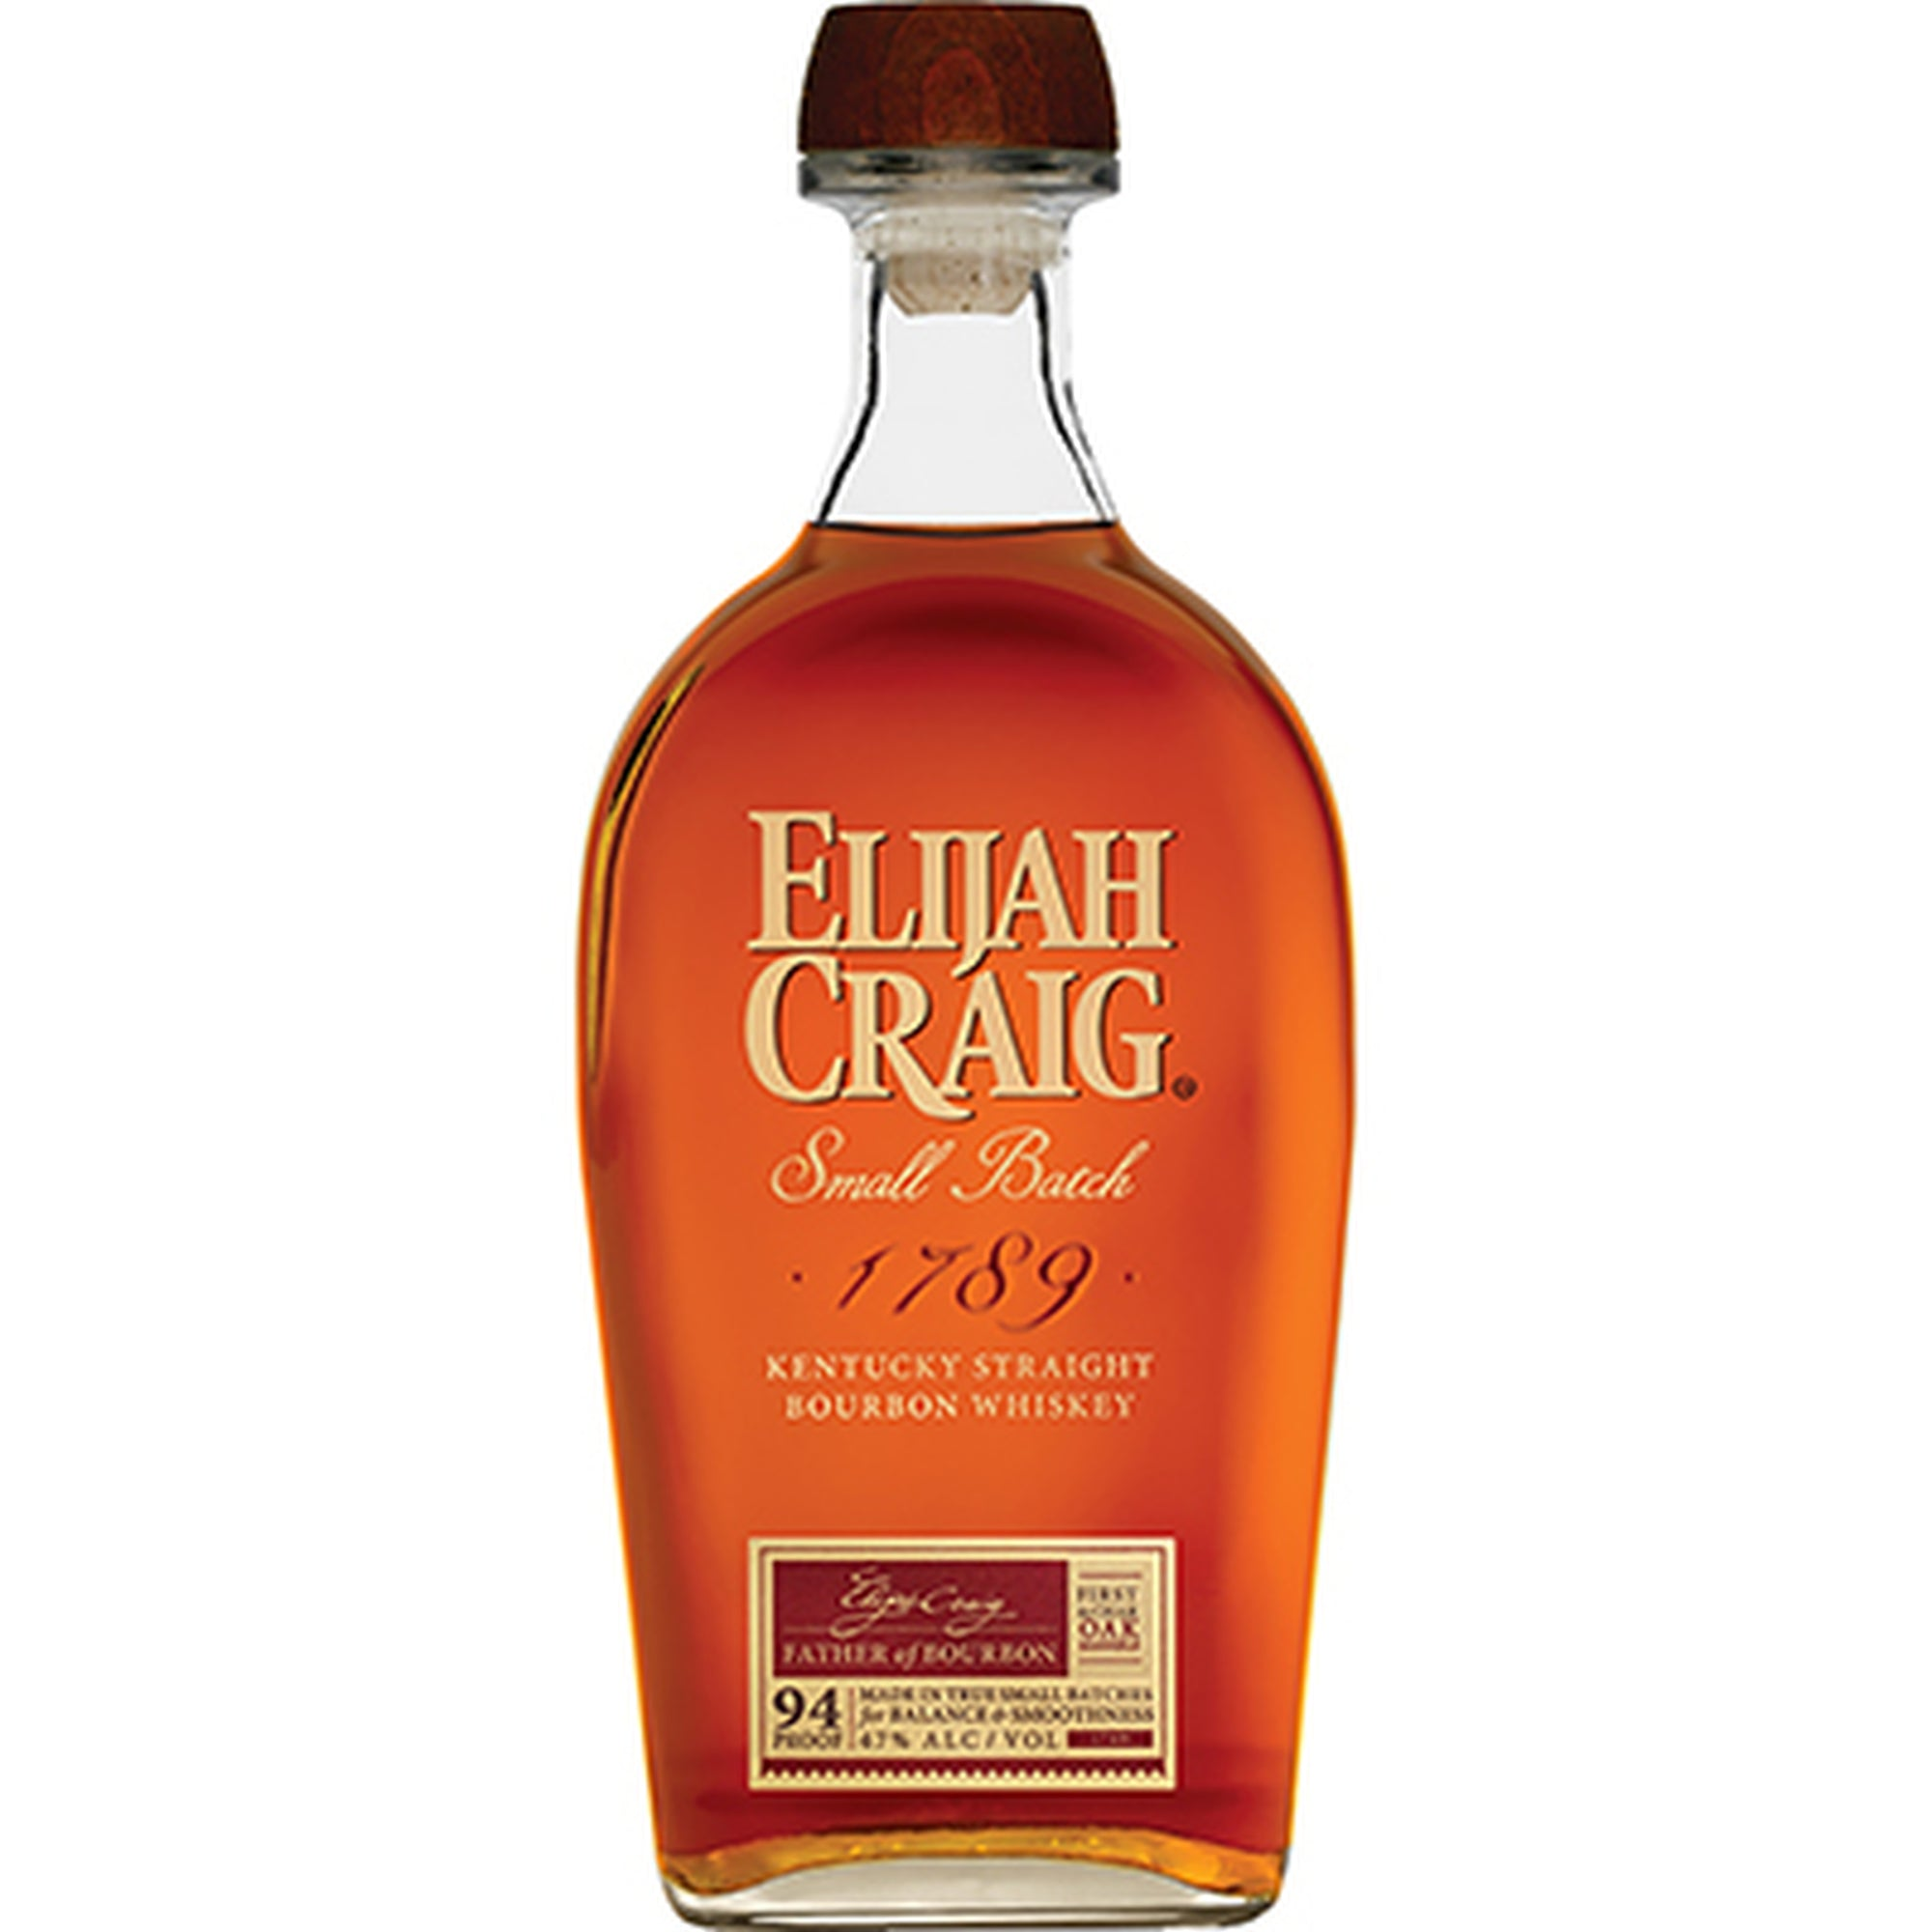 Elijah Craig 12yr Small Batch Bourbon (750ml)